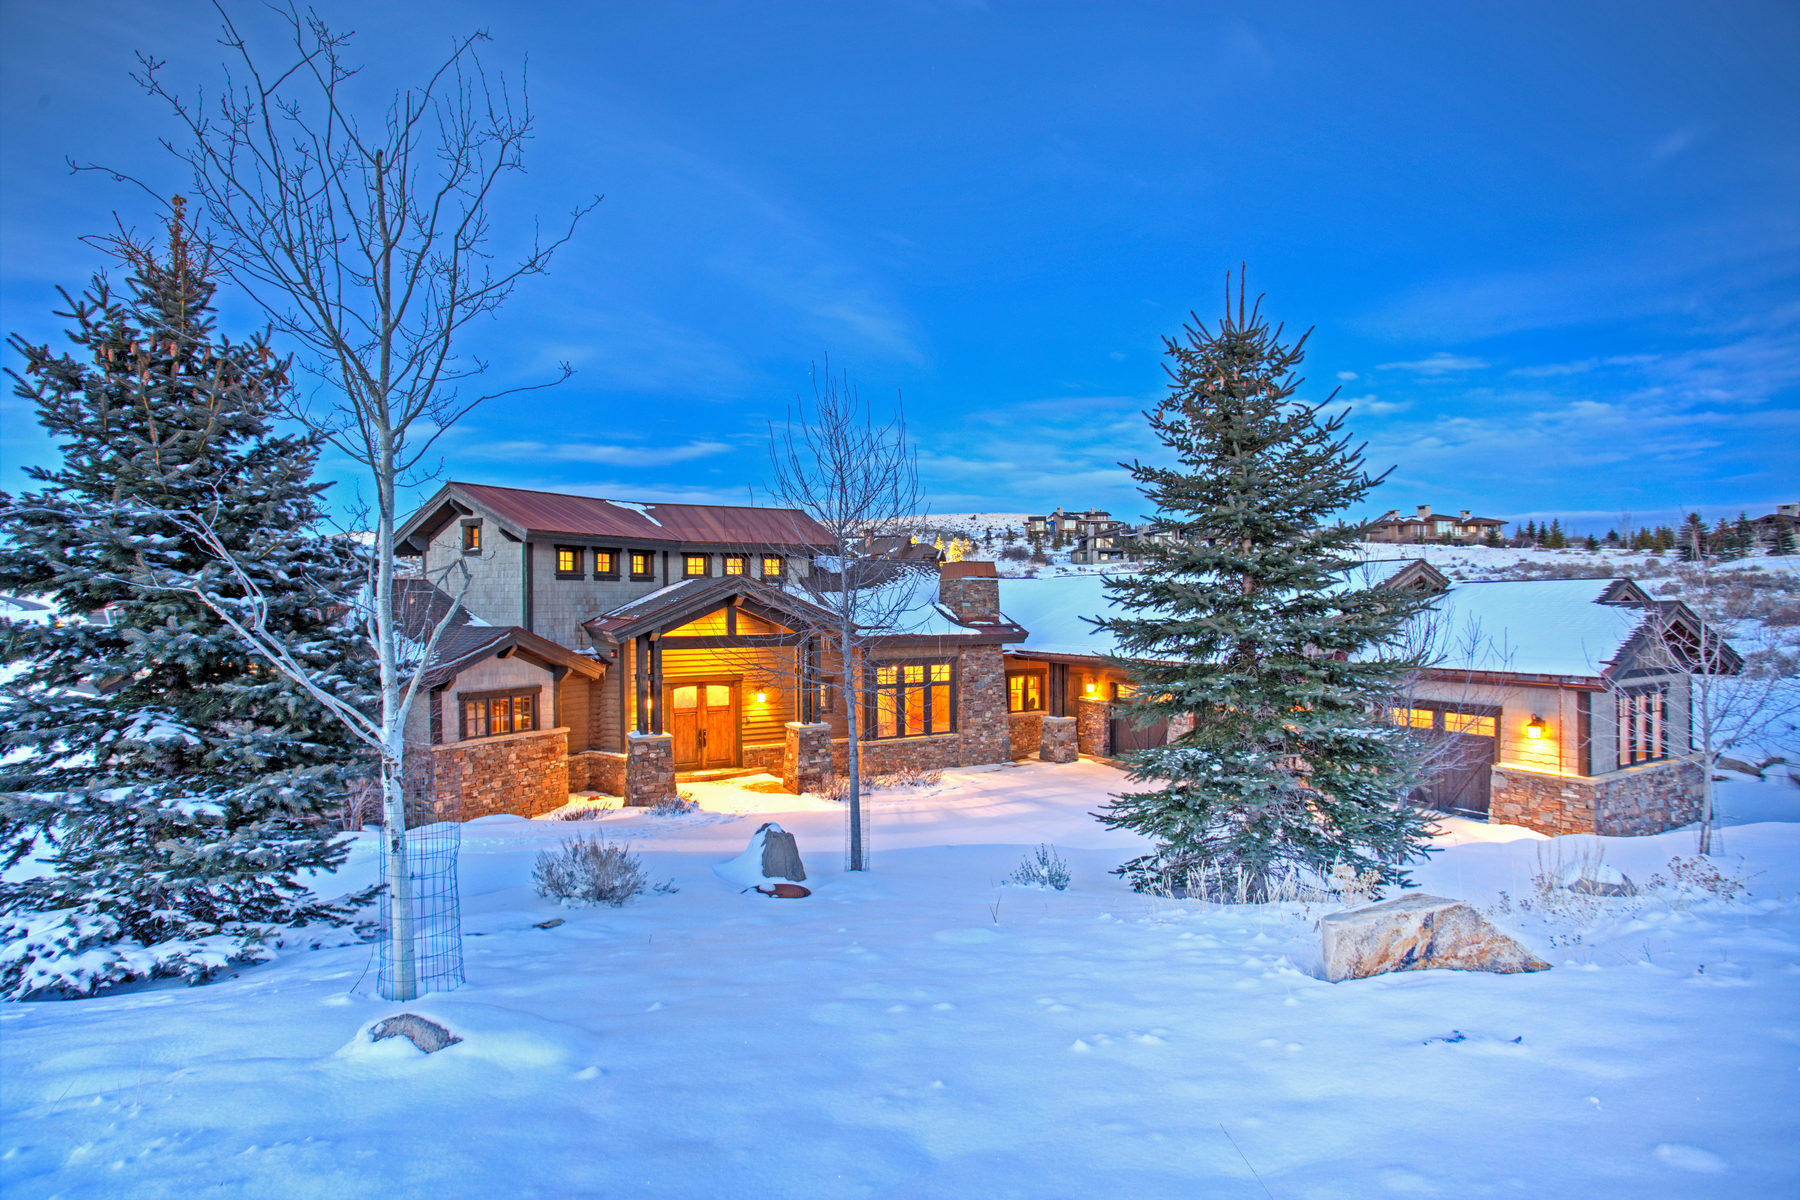 Single Family Home for Sale at Spectacular Promontory Home Overlooking the 14th Hole of the Pete Dye Golf Cours 3058 E Wapiti Canyon Rd Park City, Utah, 84098 United States